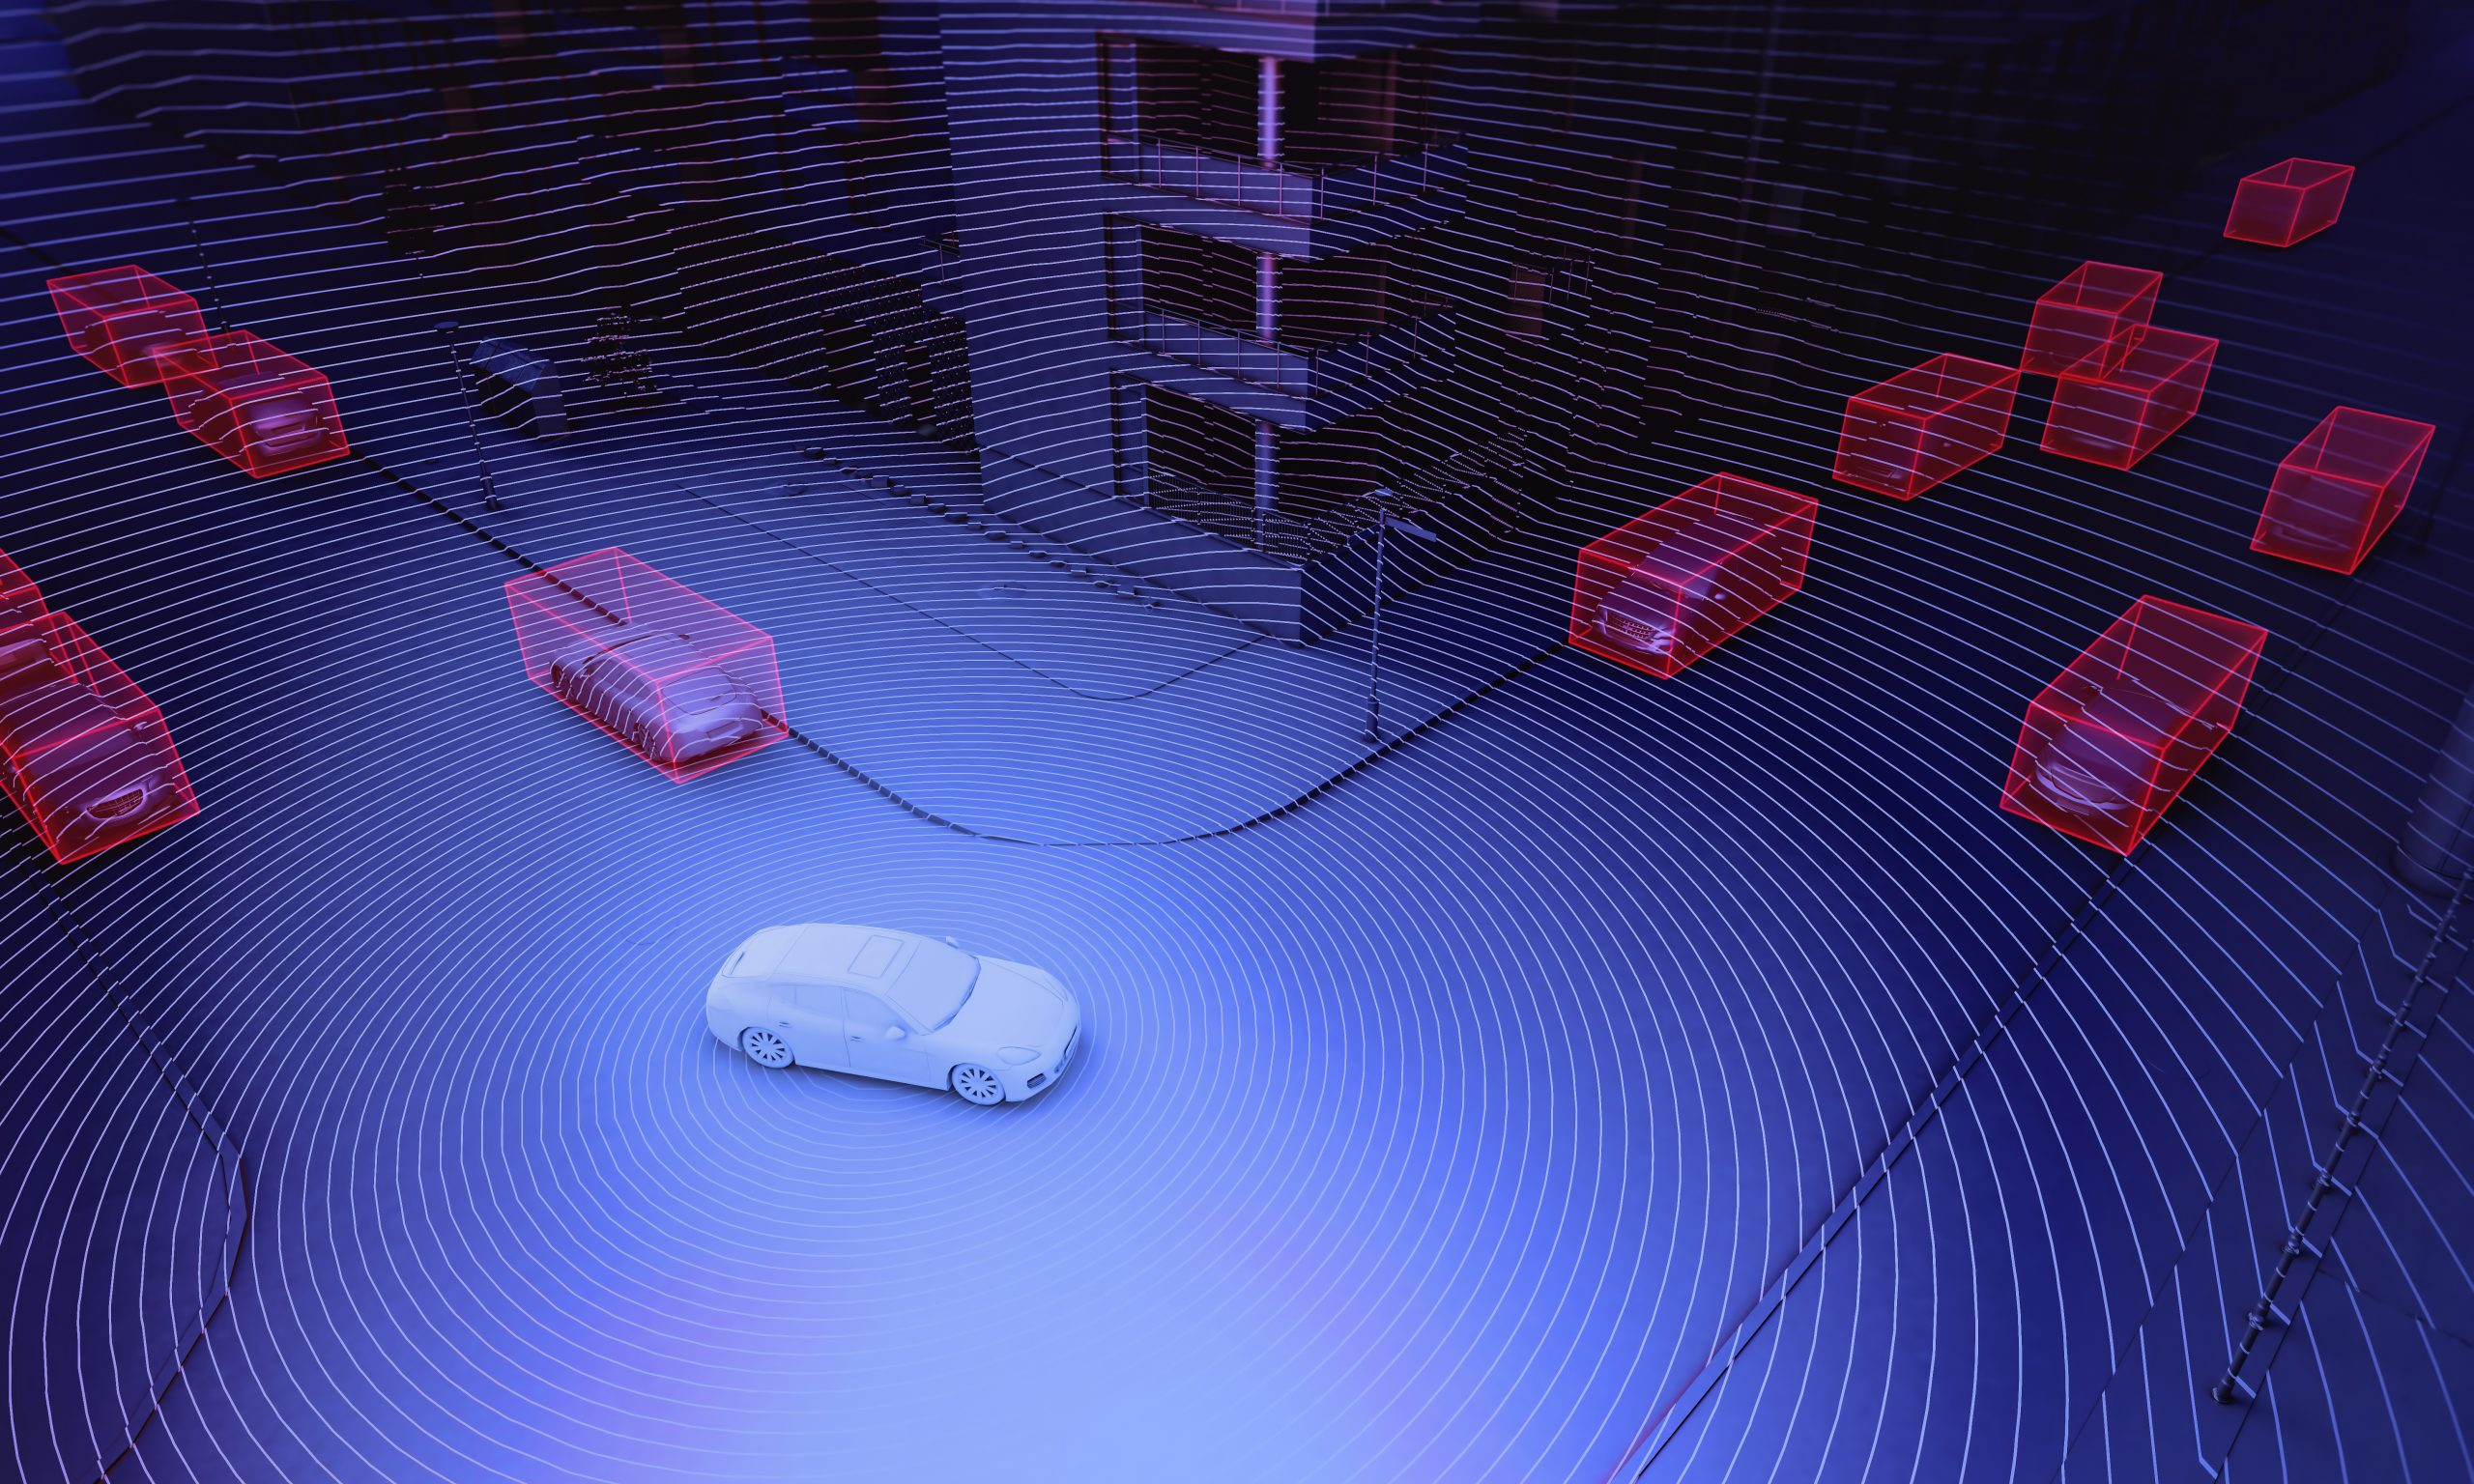 Daniel Ruiz, CEO of Zenzic, and Geoff Davis, Executive Director, HORIBA MIRA & VP for HORIBA Automotive Test Systems, explain why the UK needs to act now to stay ahead of the challenges around automotive cyber-security.